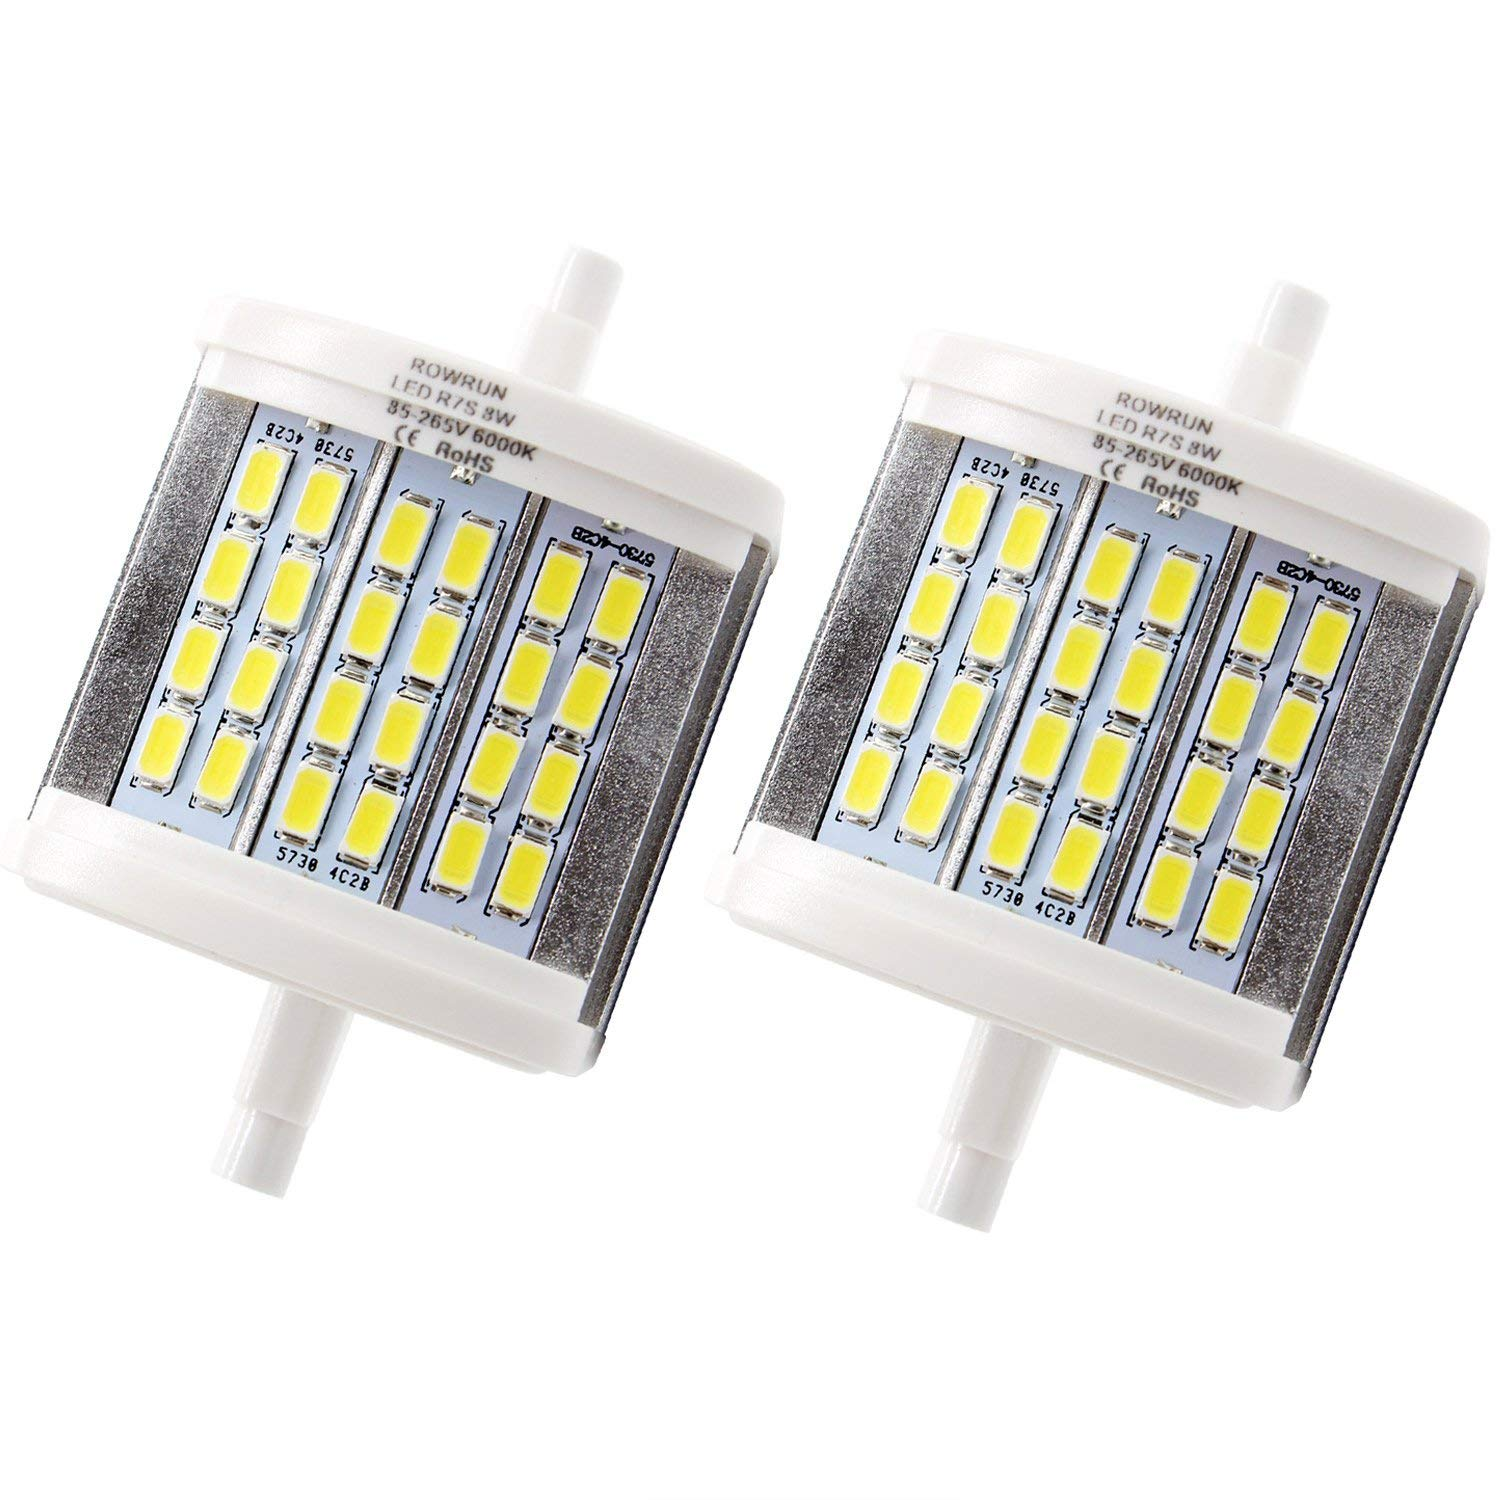 Rowrun R7S 78mm LED Daylight White 6000K 8W Non Dimmable 700LM 24PCS 5630SMD AC85-265V J78 Double Ended Light 75W Equivalent J Type Halogen Bulb Replacement Pack of 2